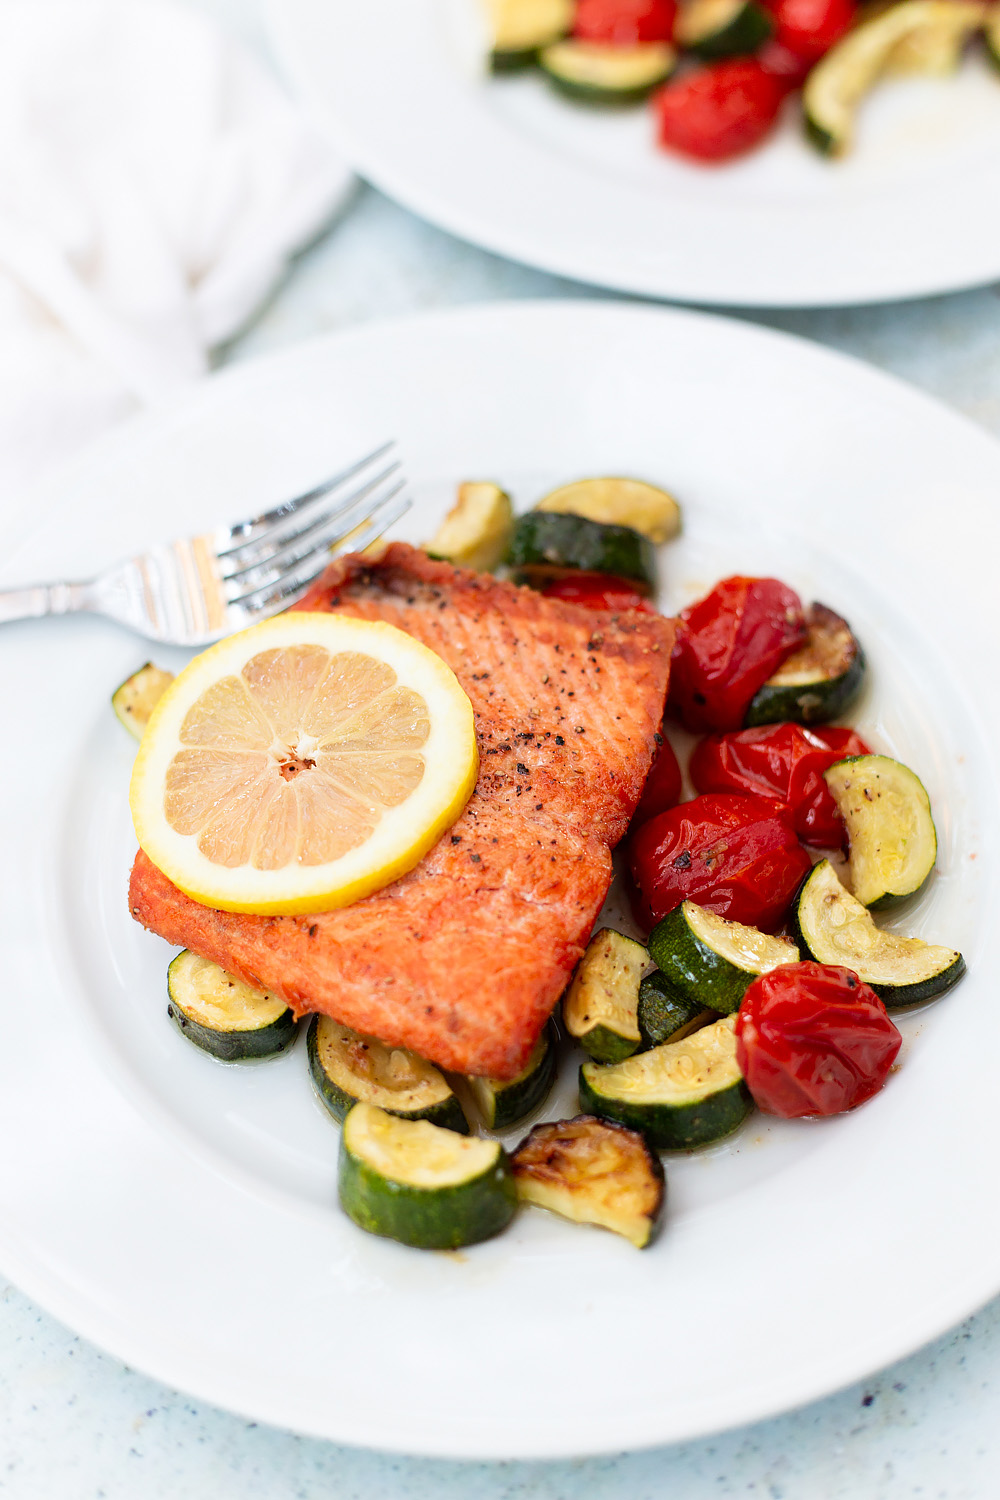 pan fried salmon with roasted veggies on a plate